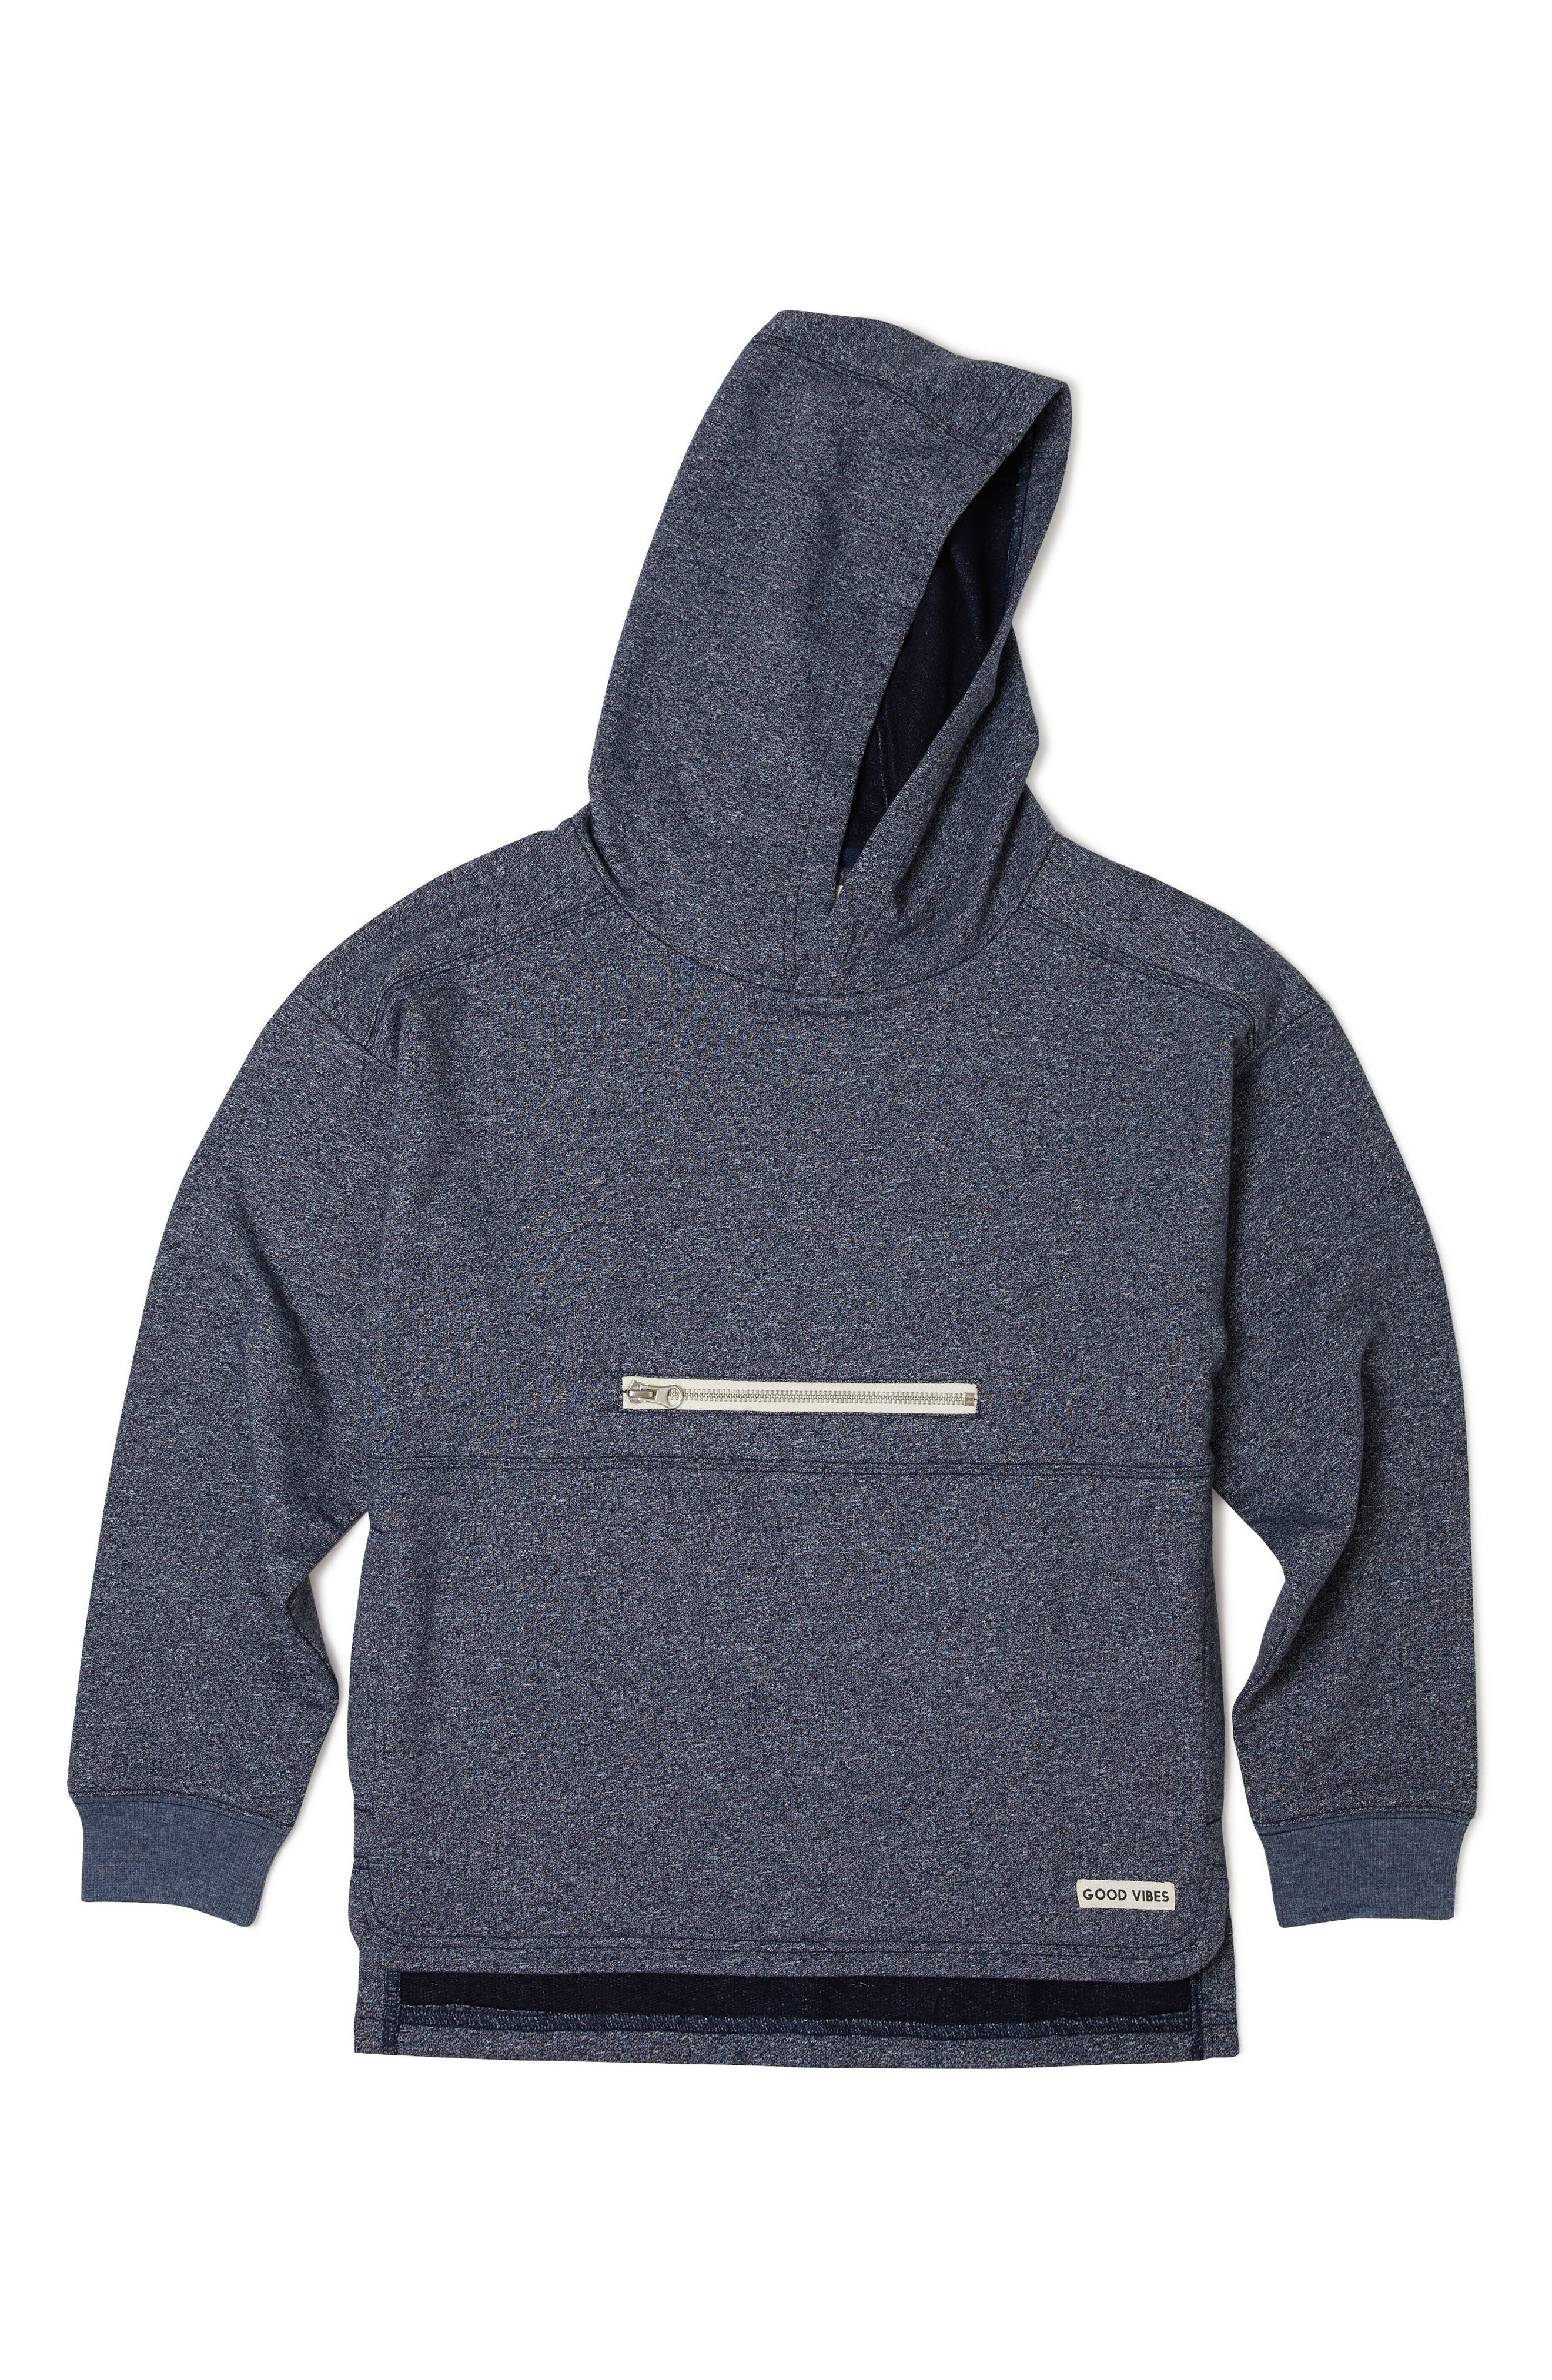 Cruise Hoodie,                         Main,                         color, Heather Navy